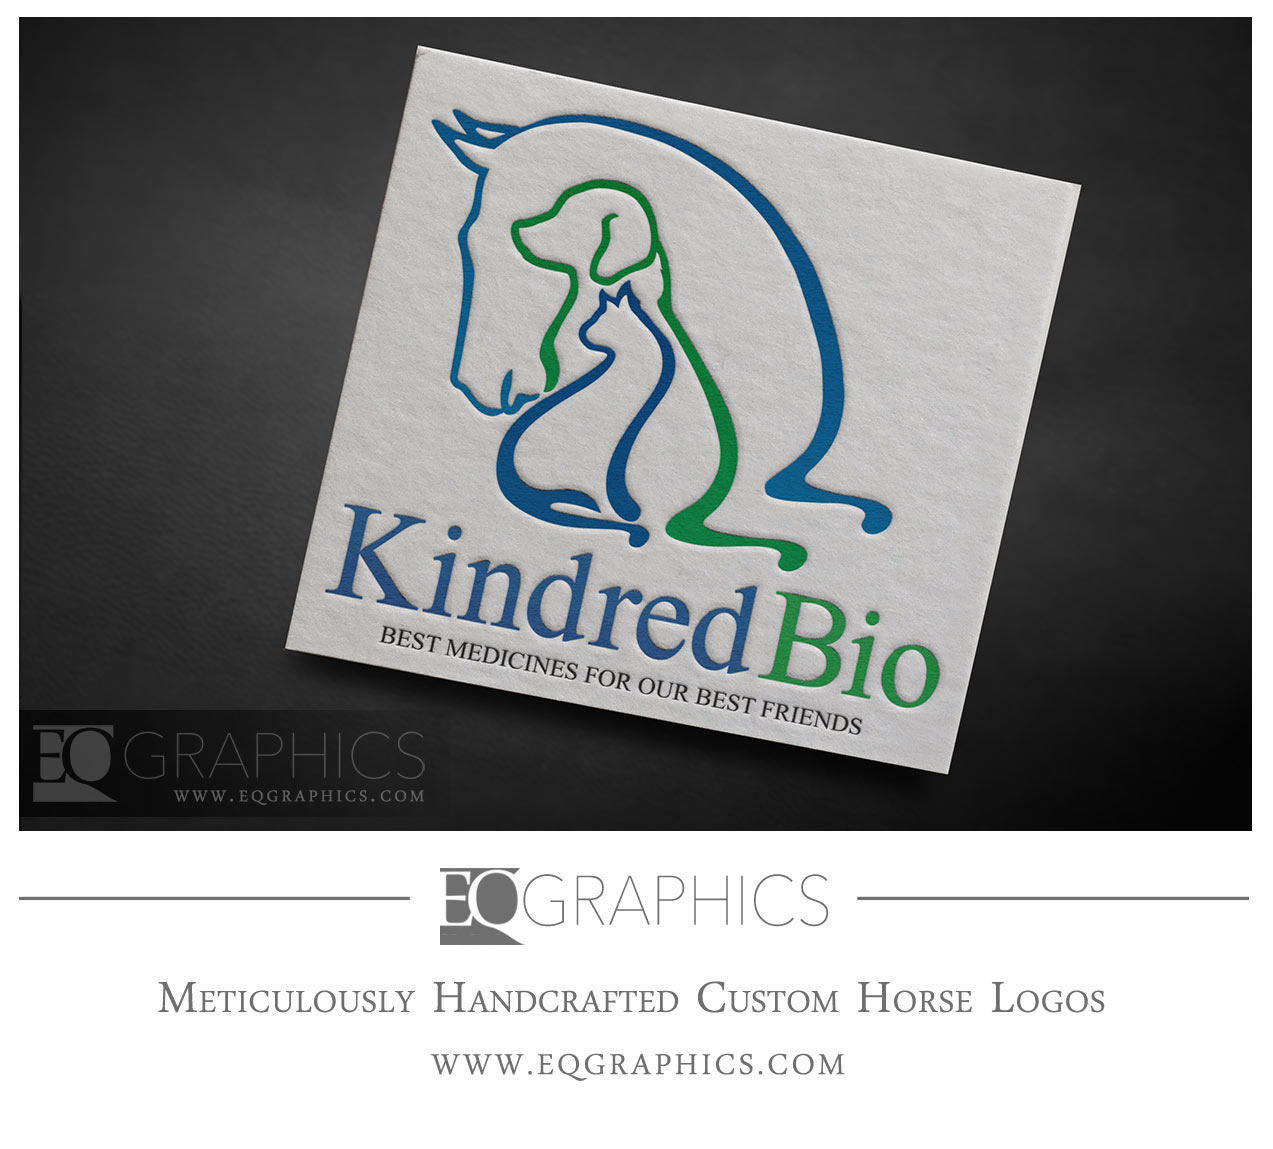 Kindred Bio Veterinary Medicine Logo by EQ Graphics Equine Medical Logos